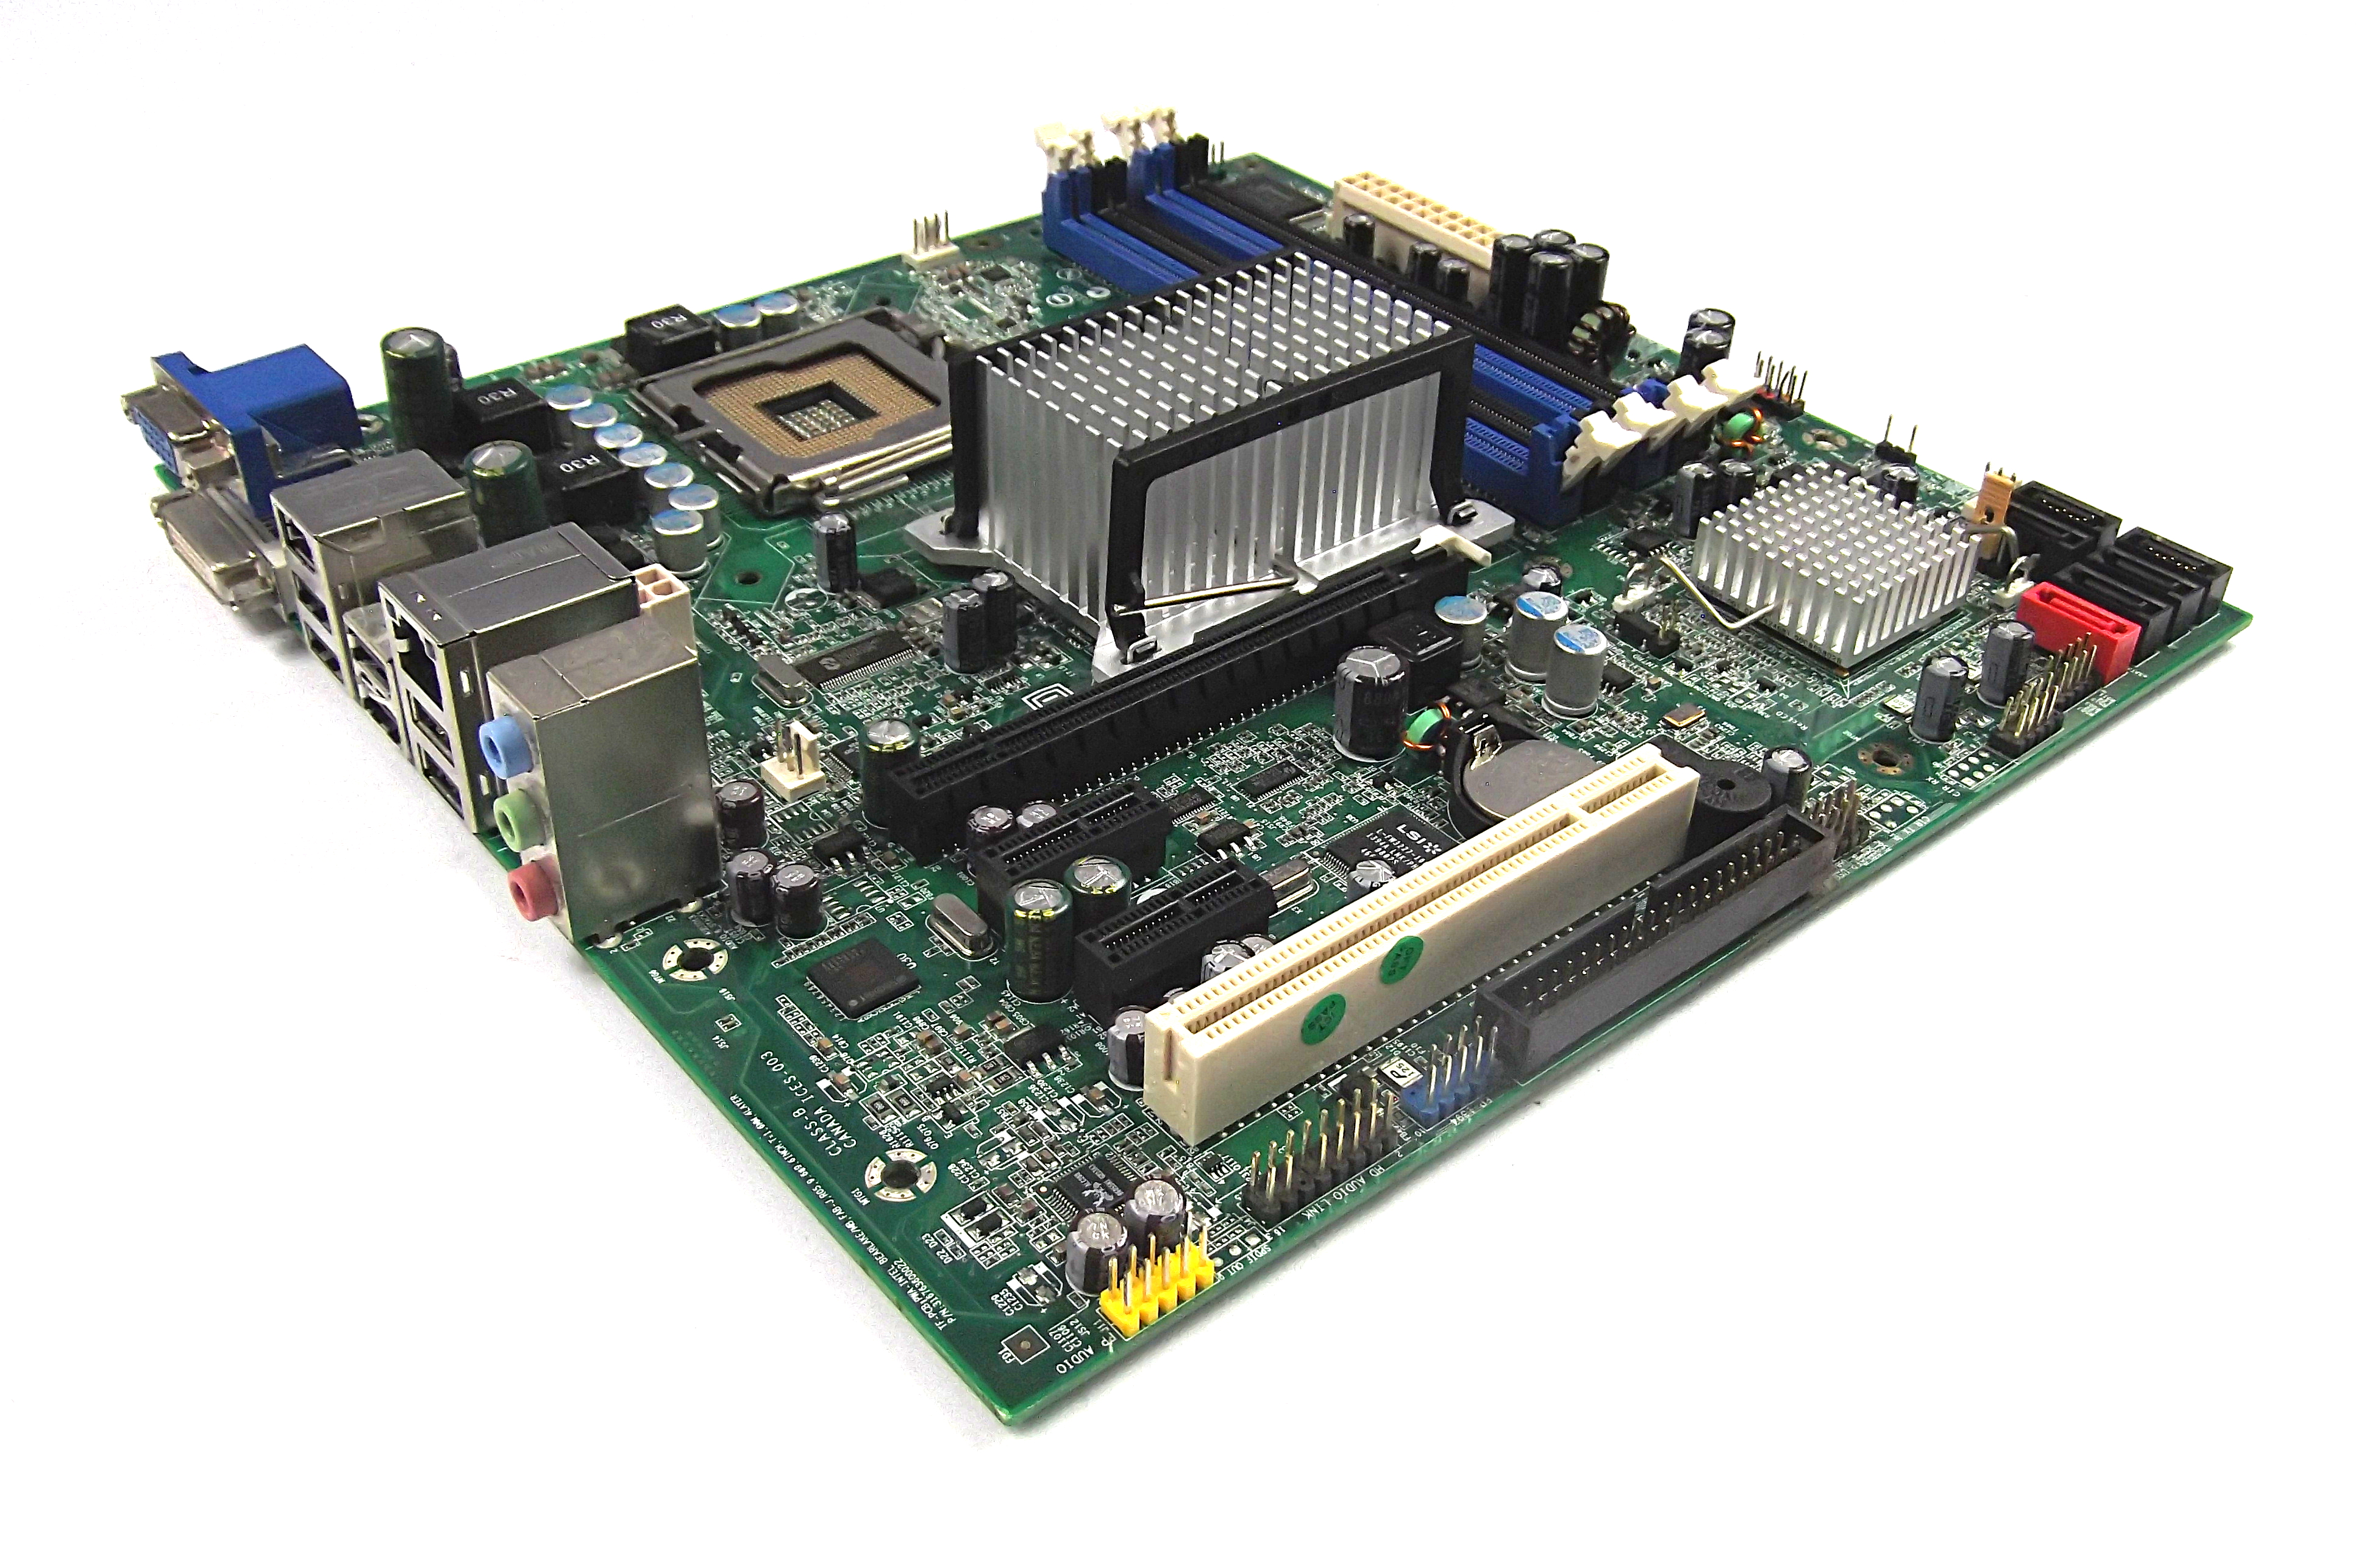 Intel DQ35JOE D82085-804 Socket LGA775 Motherboard